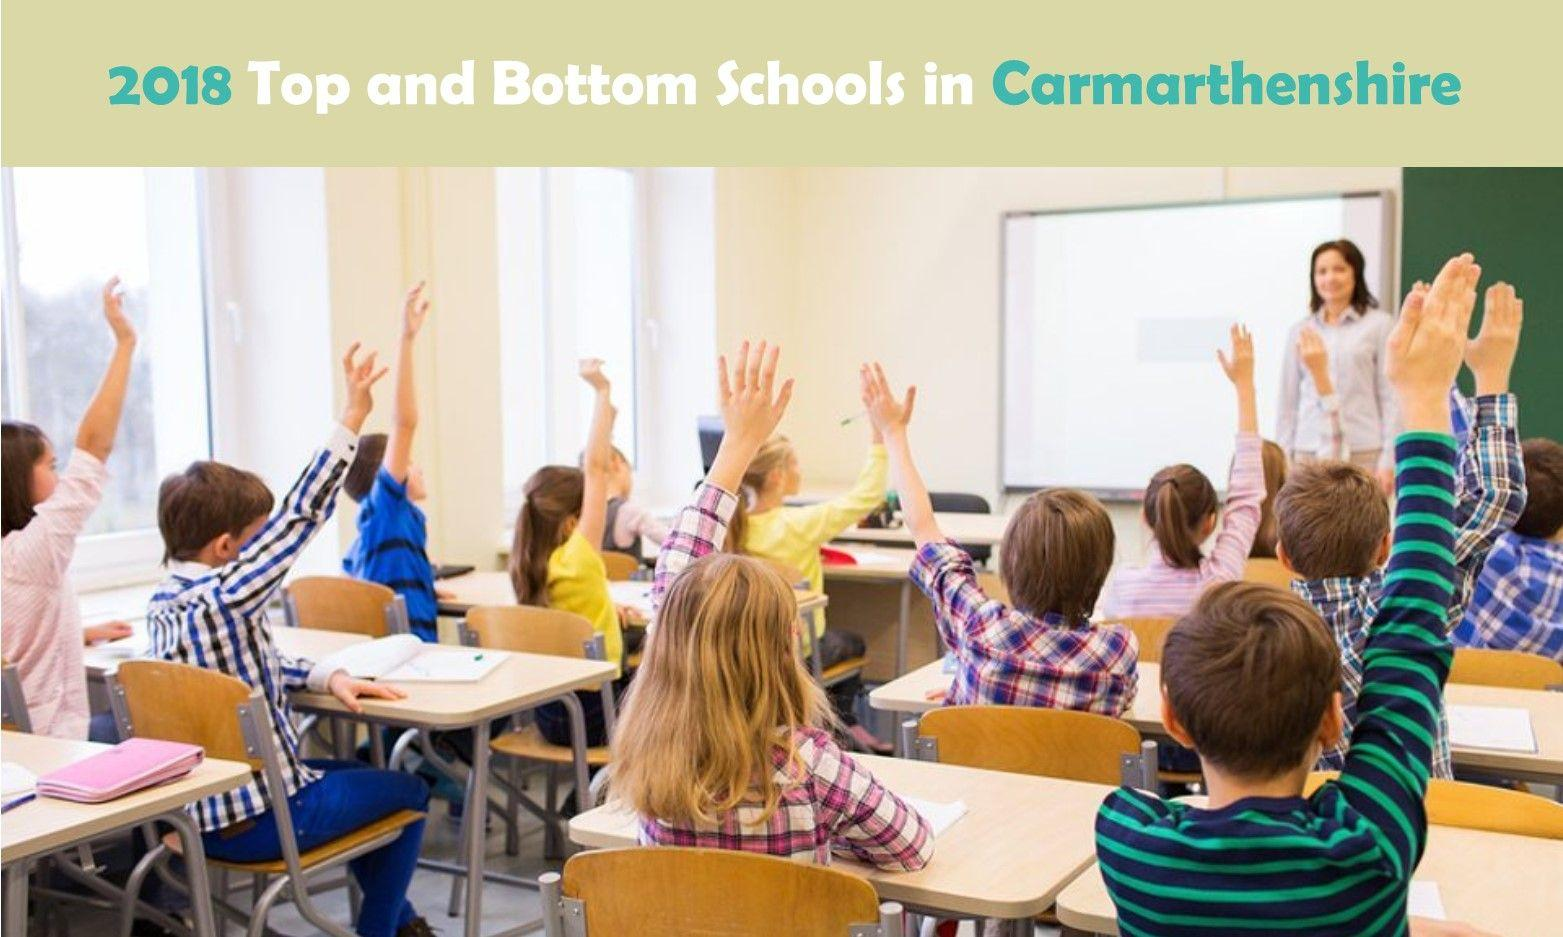 2018 Top and Bottom Schools in Carmarthenshire